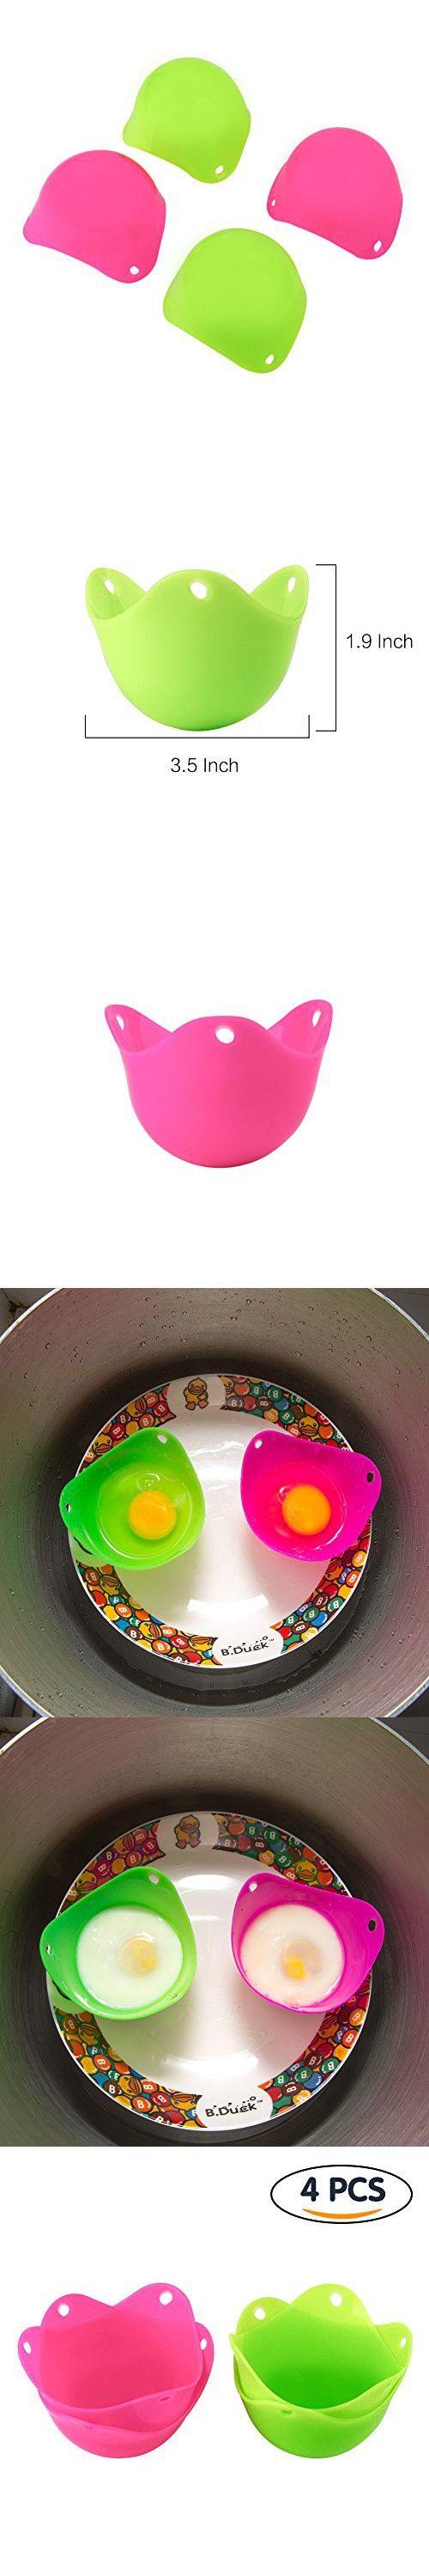 Tenn Well Silicone Egg Poachers, Reusable Silicone Egg Cups for Cooking Poached Eggs, Jellies, Desserts, Baking (Set of 4)